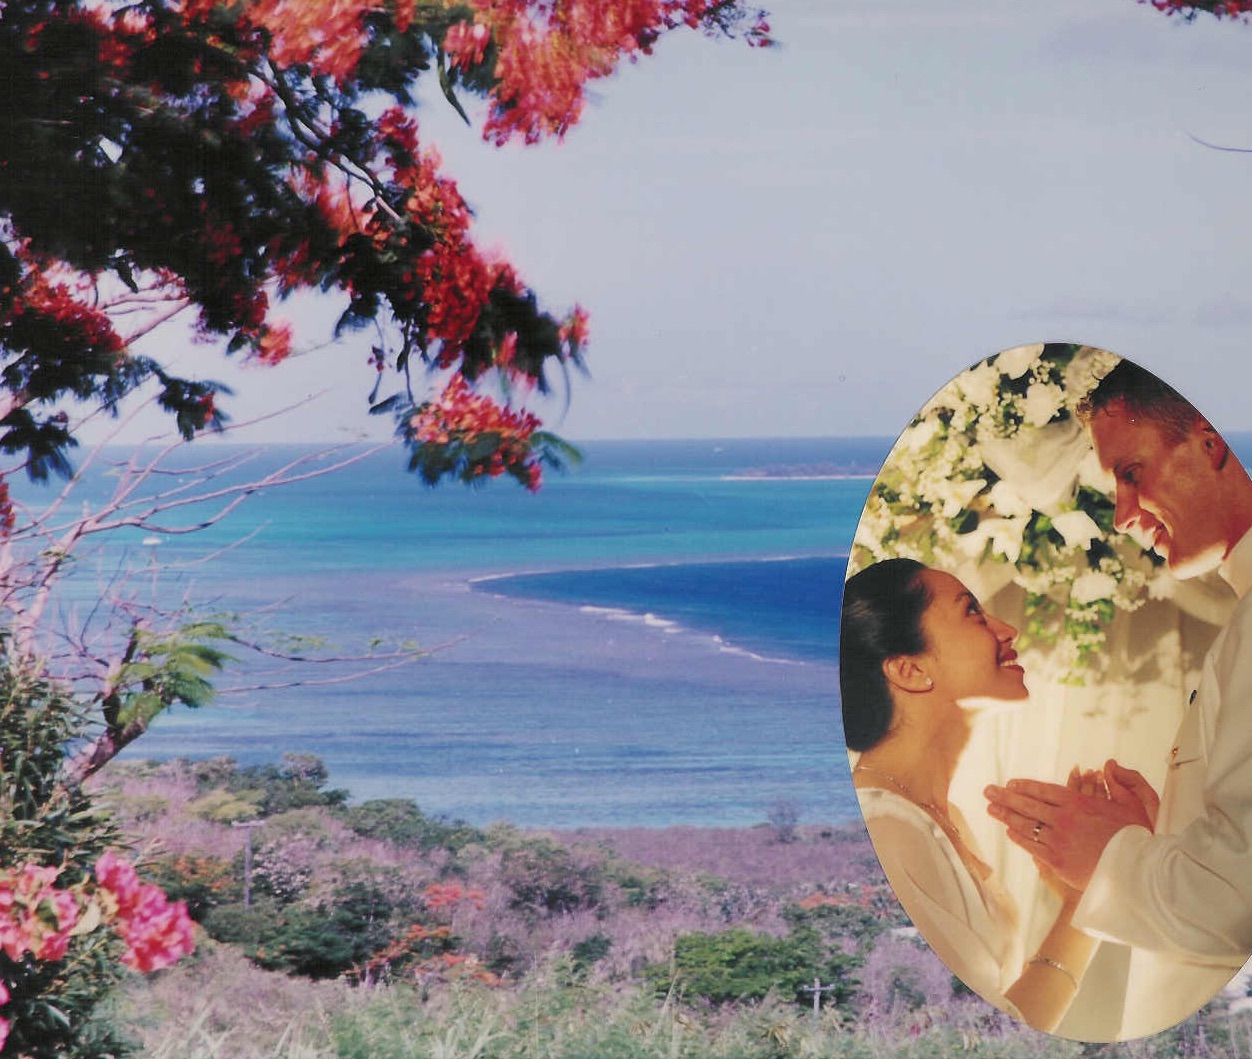 One of our wedding photos. This has Franicia and Tim during their wedding ceremony. The scenery is the island of Saipan.